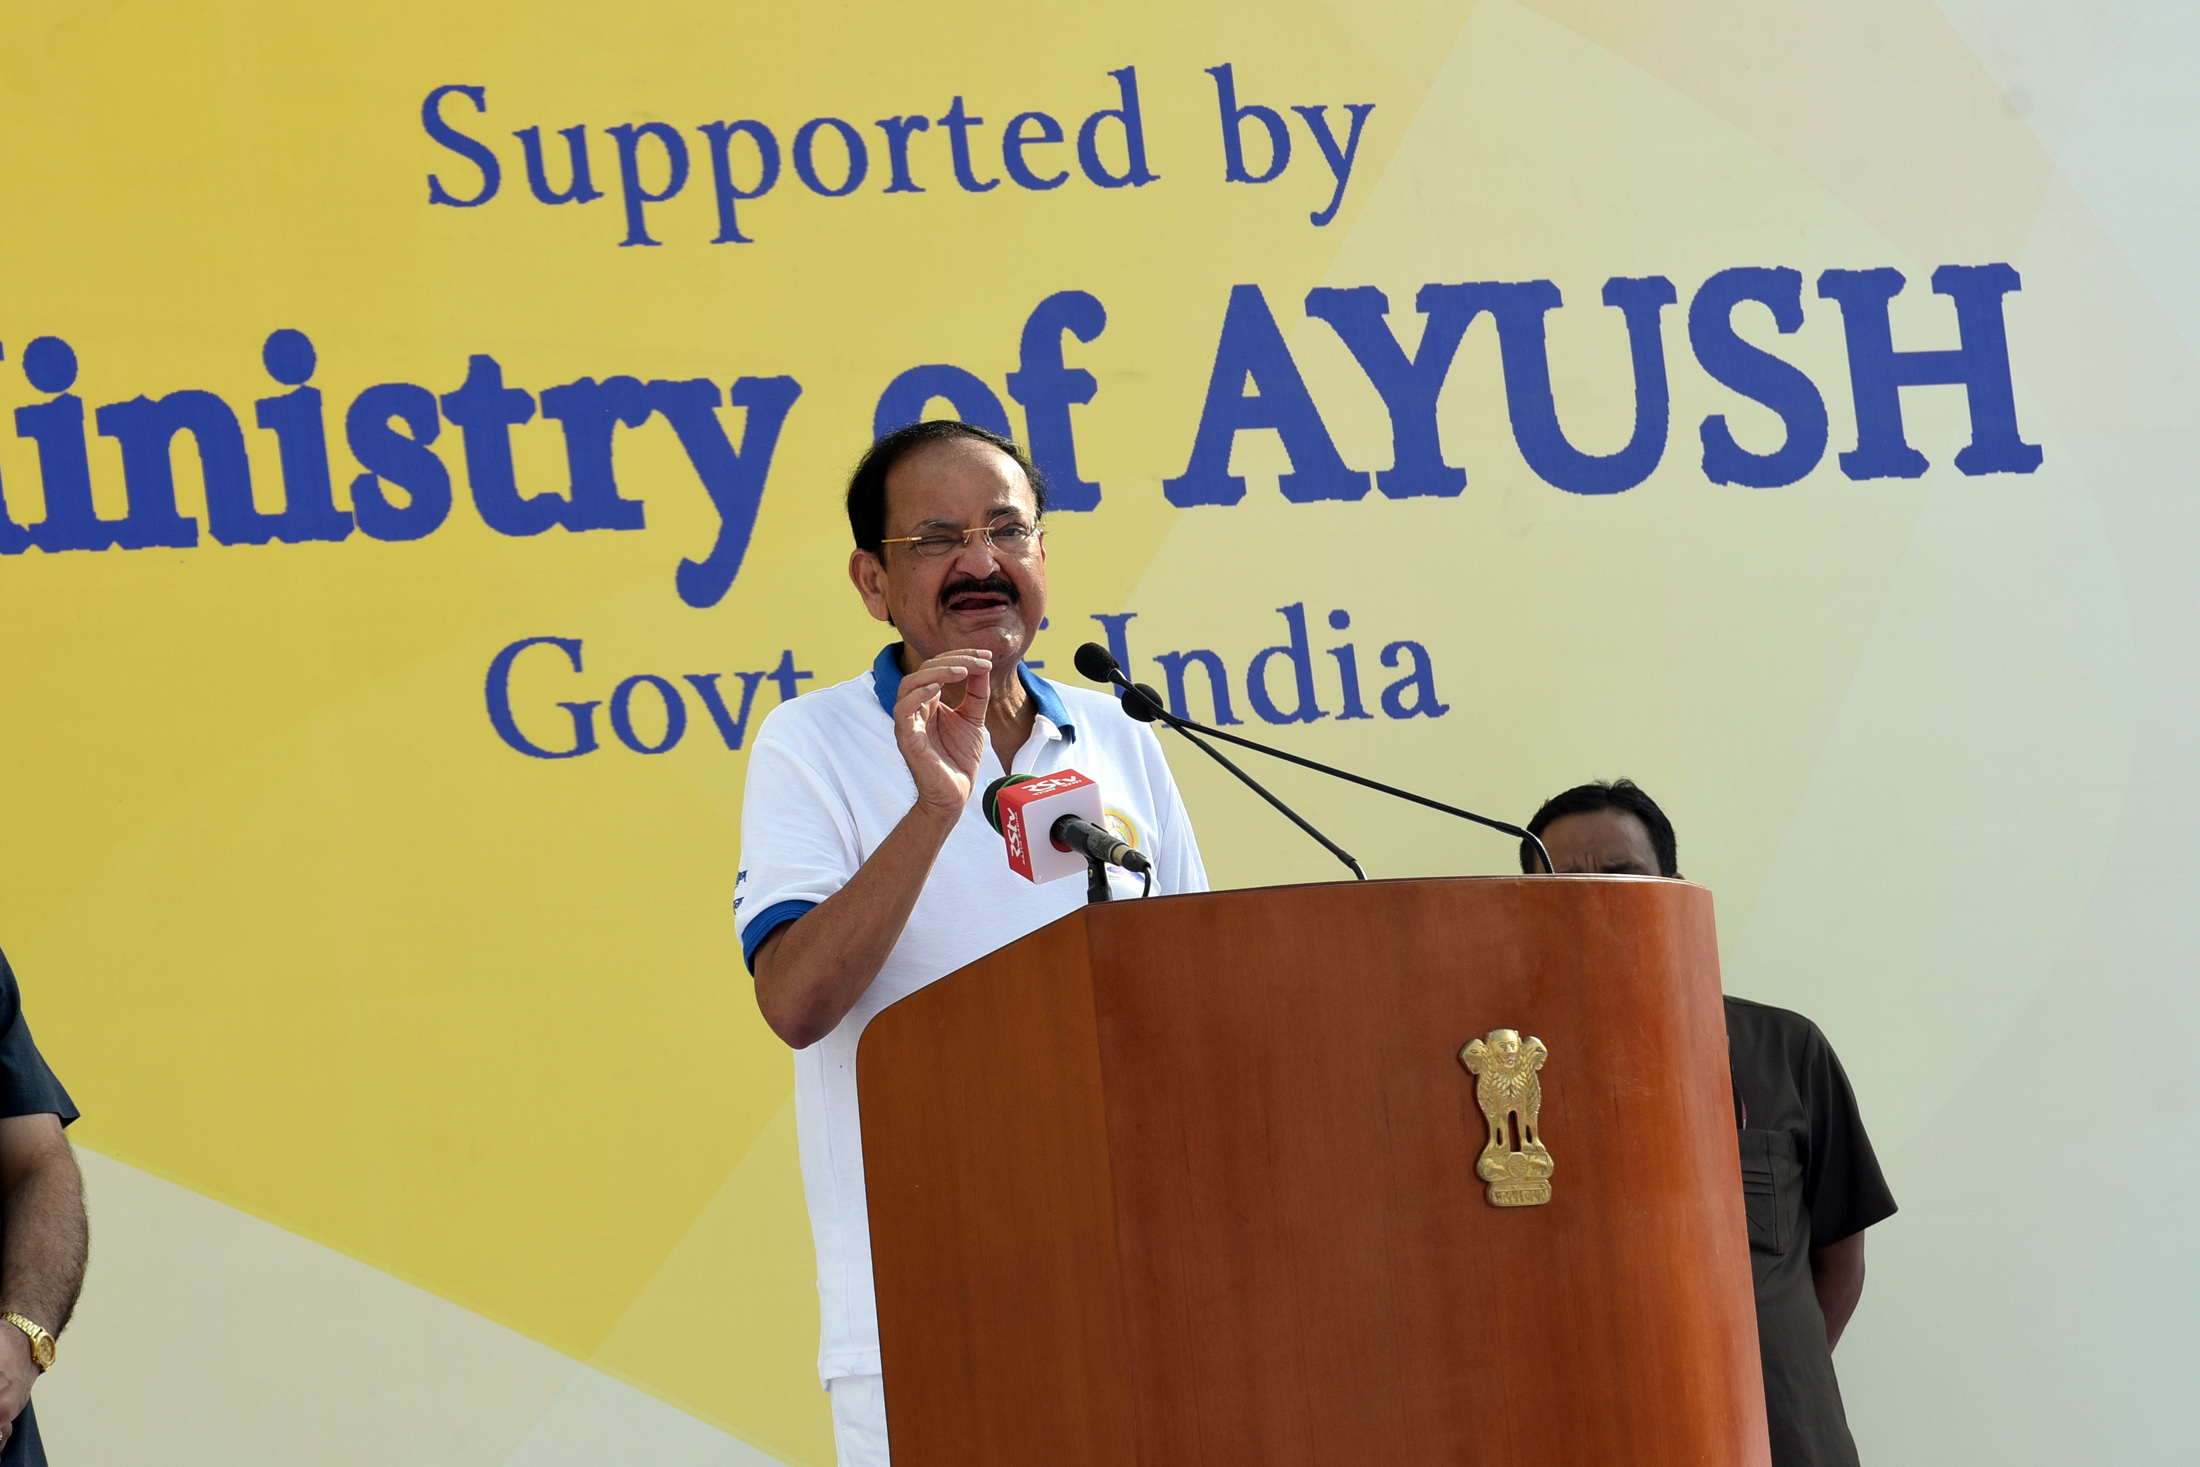 The Vice President, Shri M. Venkaiah Naidu addressing the gathering at the International Day of Yoga celebrations organized by Prajapita Brahma Kumaris Vishwa Vidyalaya, at the Red Fort grounds, in Delhi on June 21, 2019.